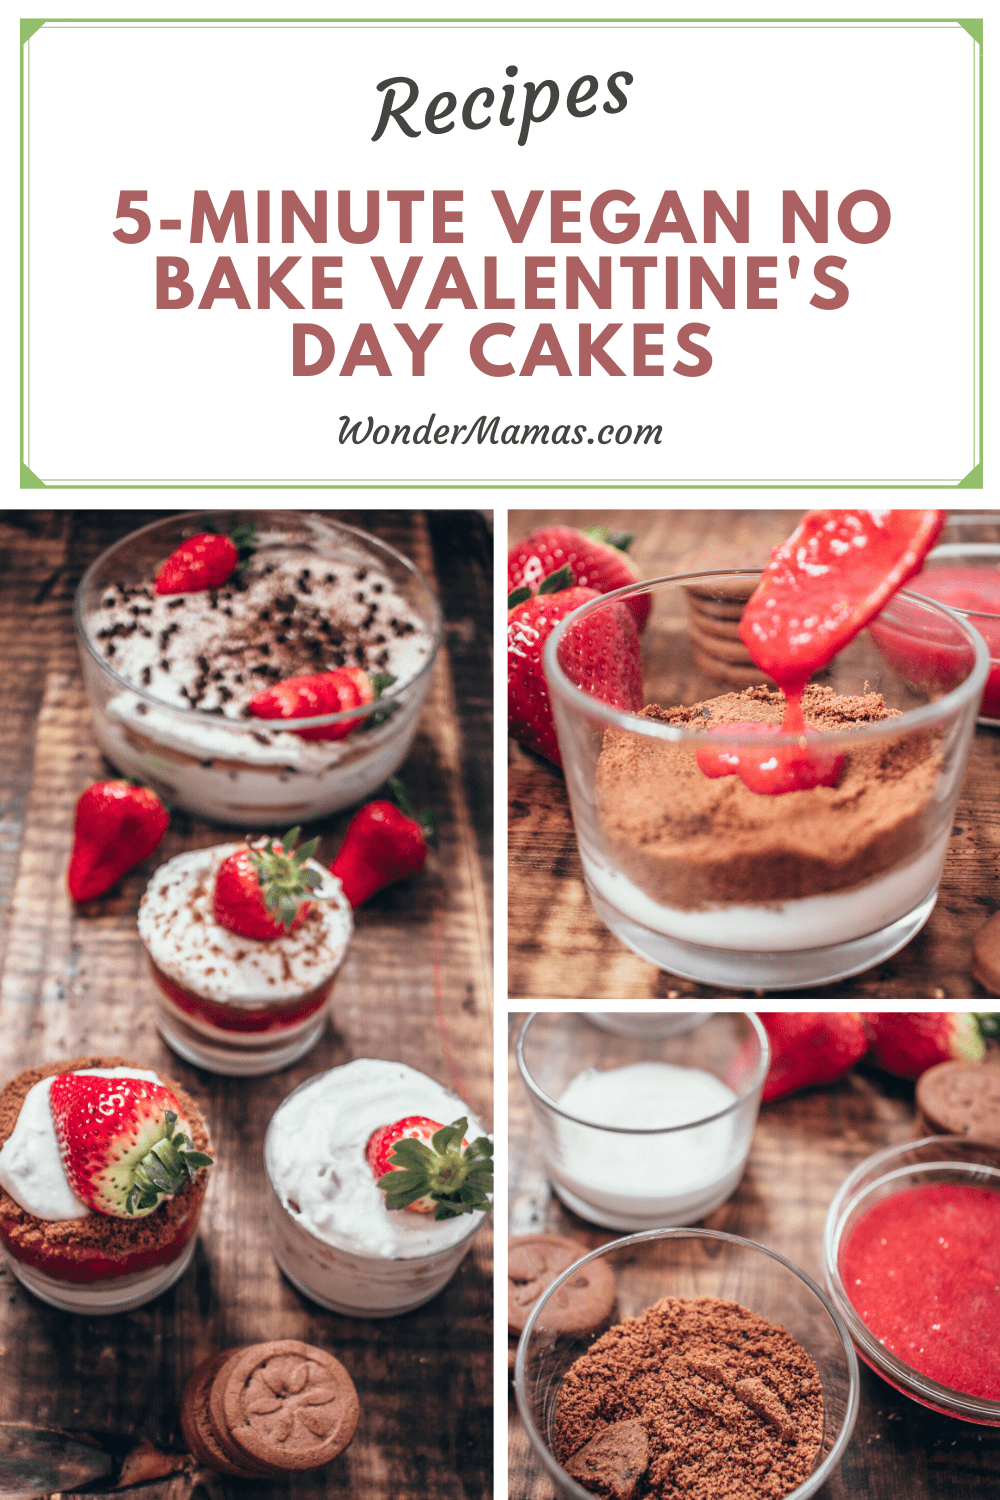 5-Minute Vegan Valentine's Day Cake